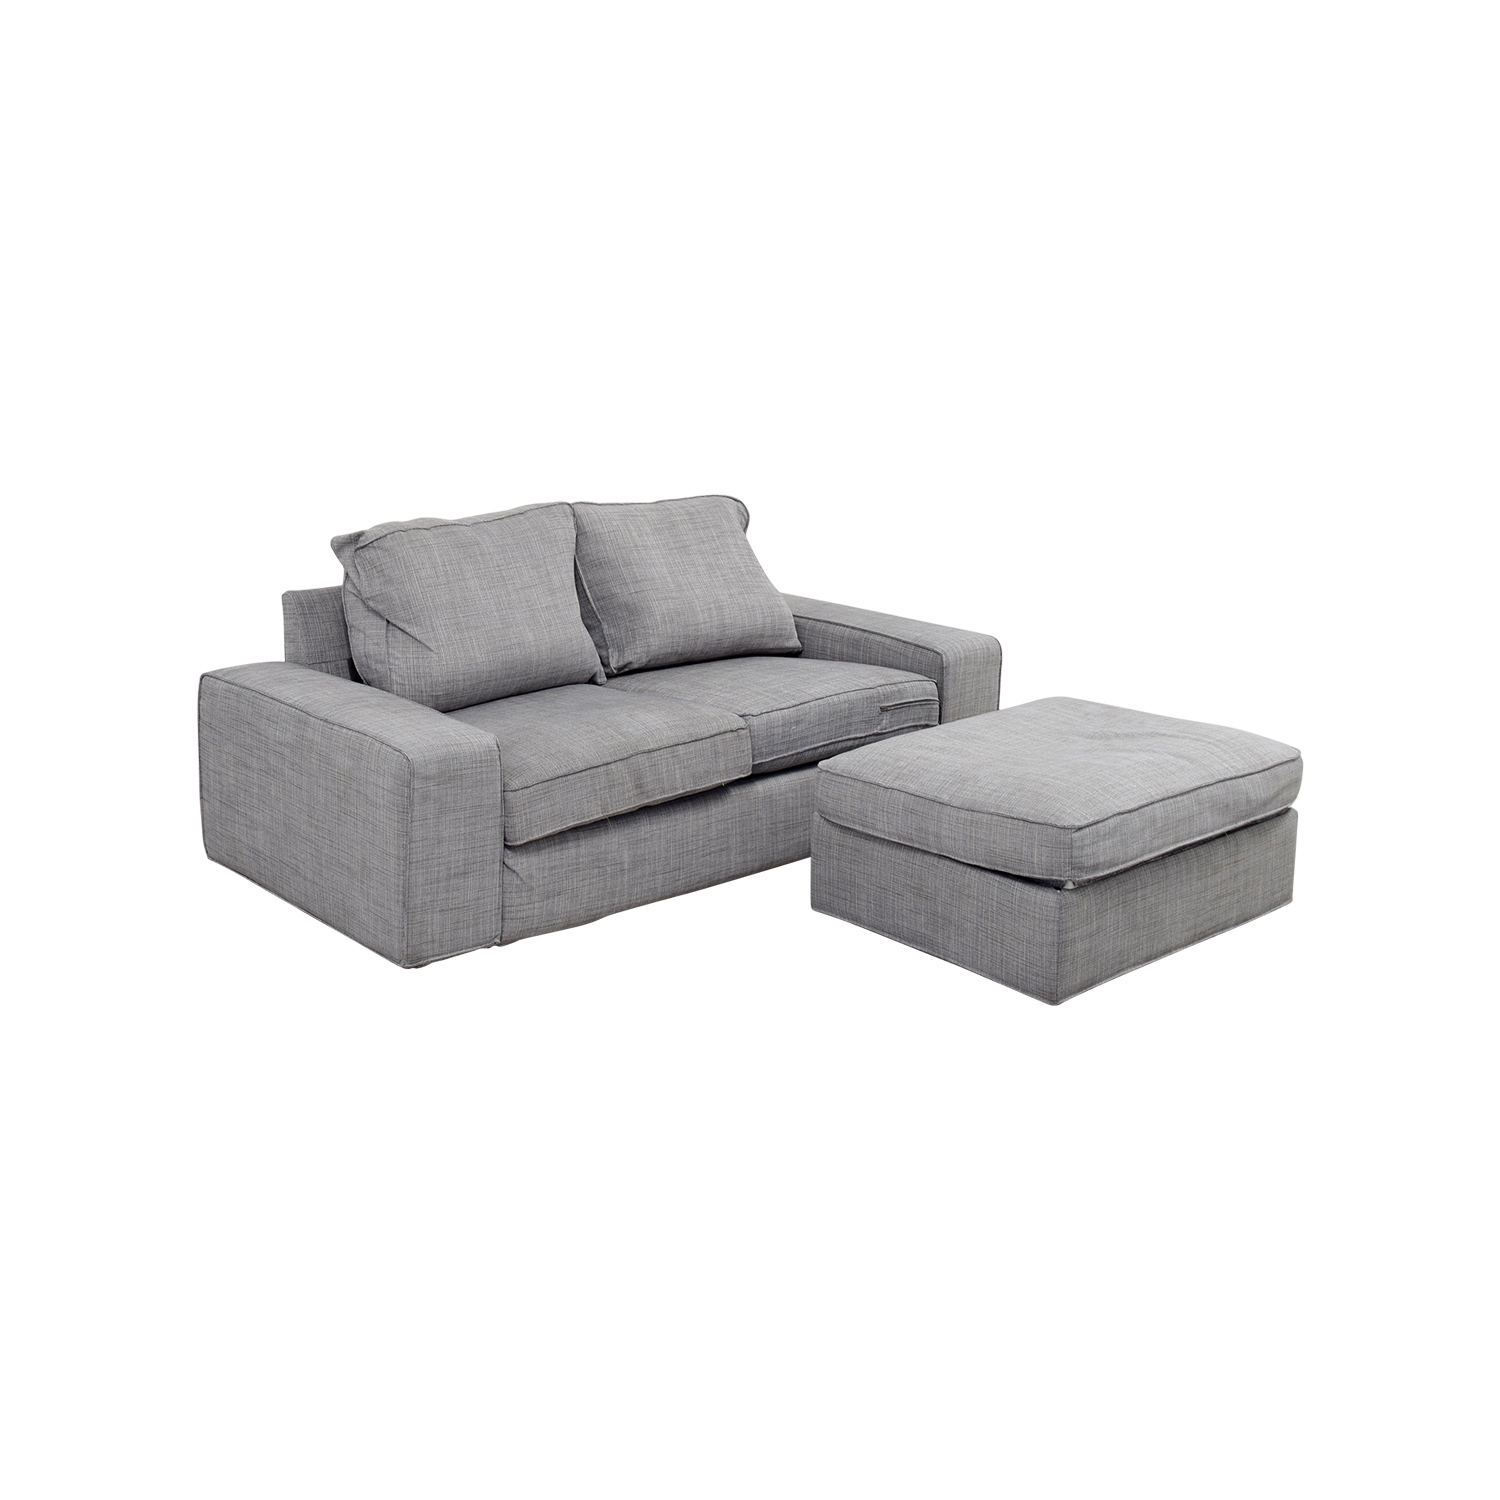 64 off ikea ikea kivik gray sofa and ottoman sofas for Kivik chaise ikea